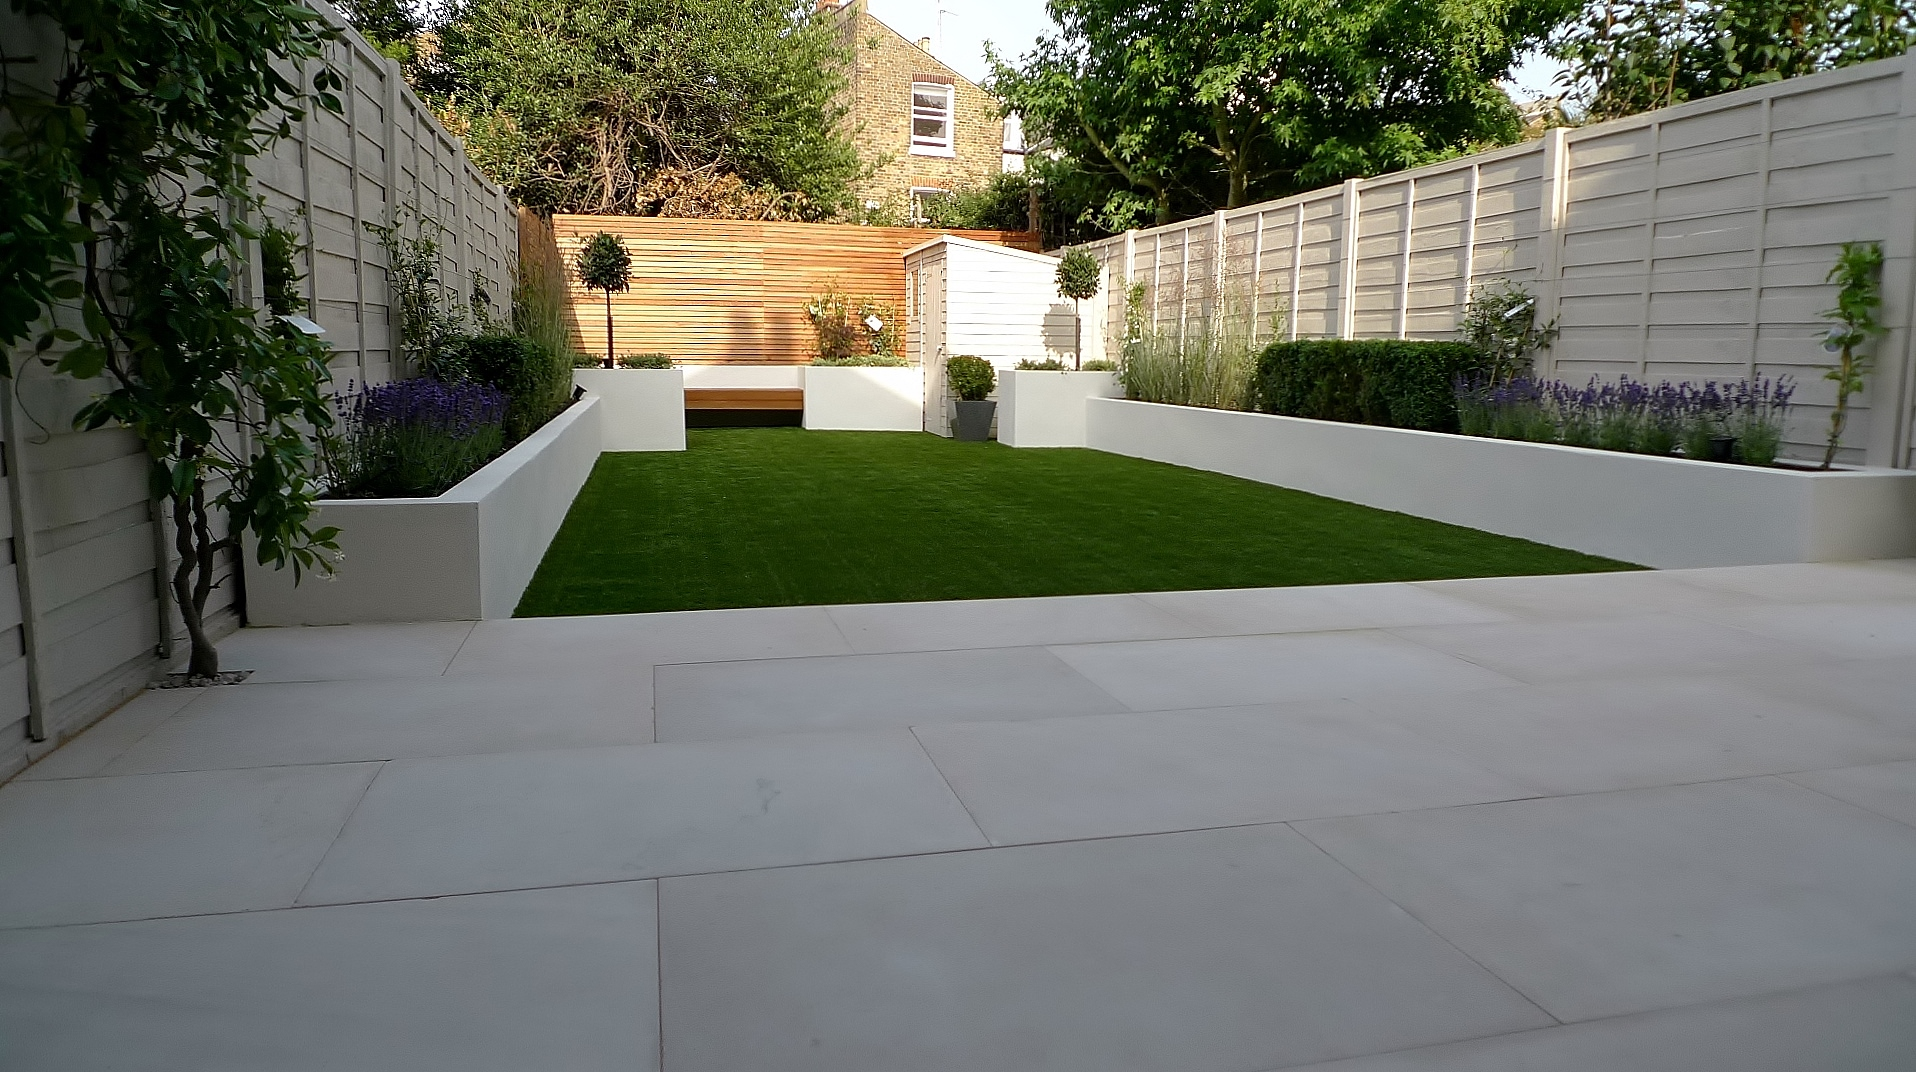 Anewgarden london garden blog for Contemporary garden designs and ideas